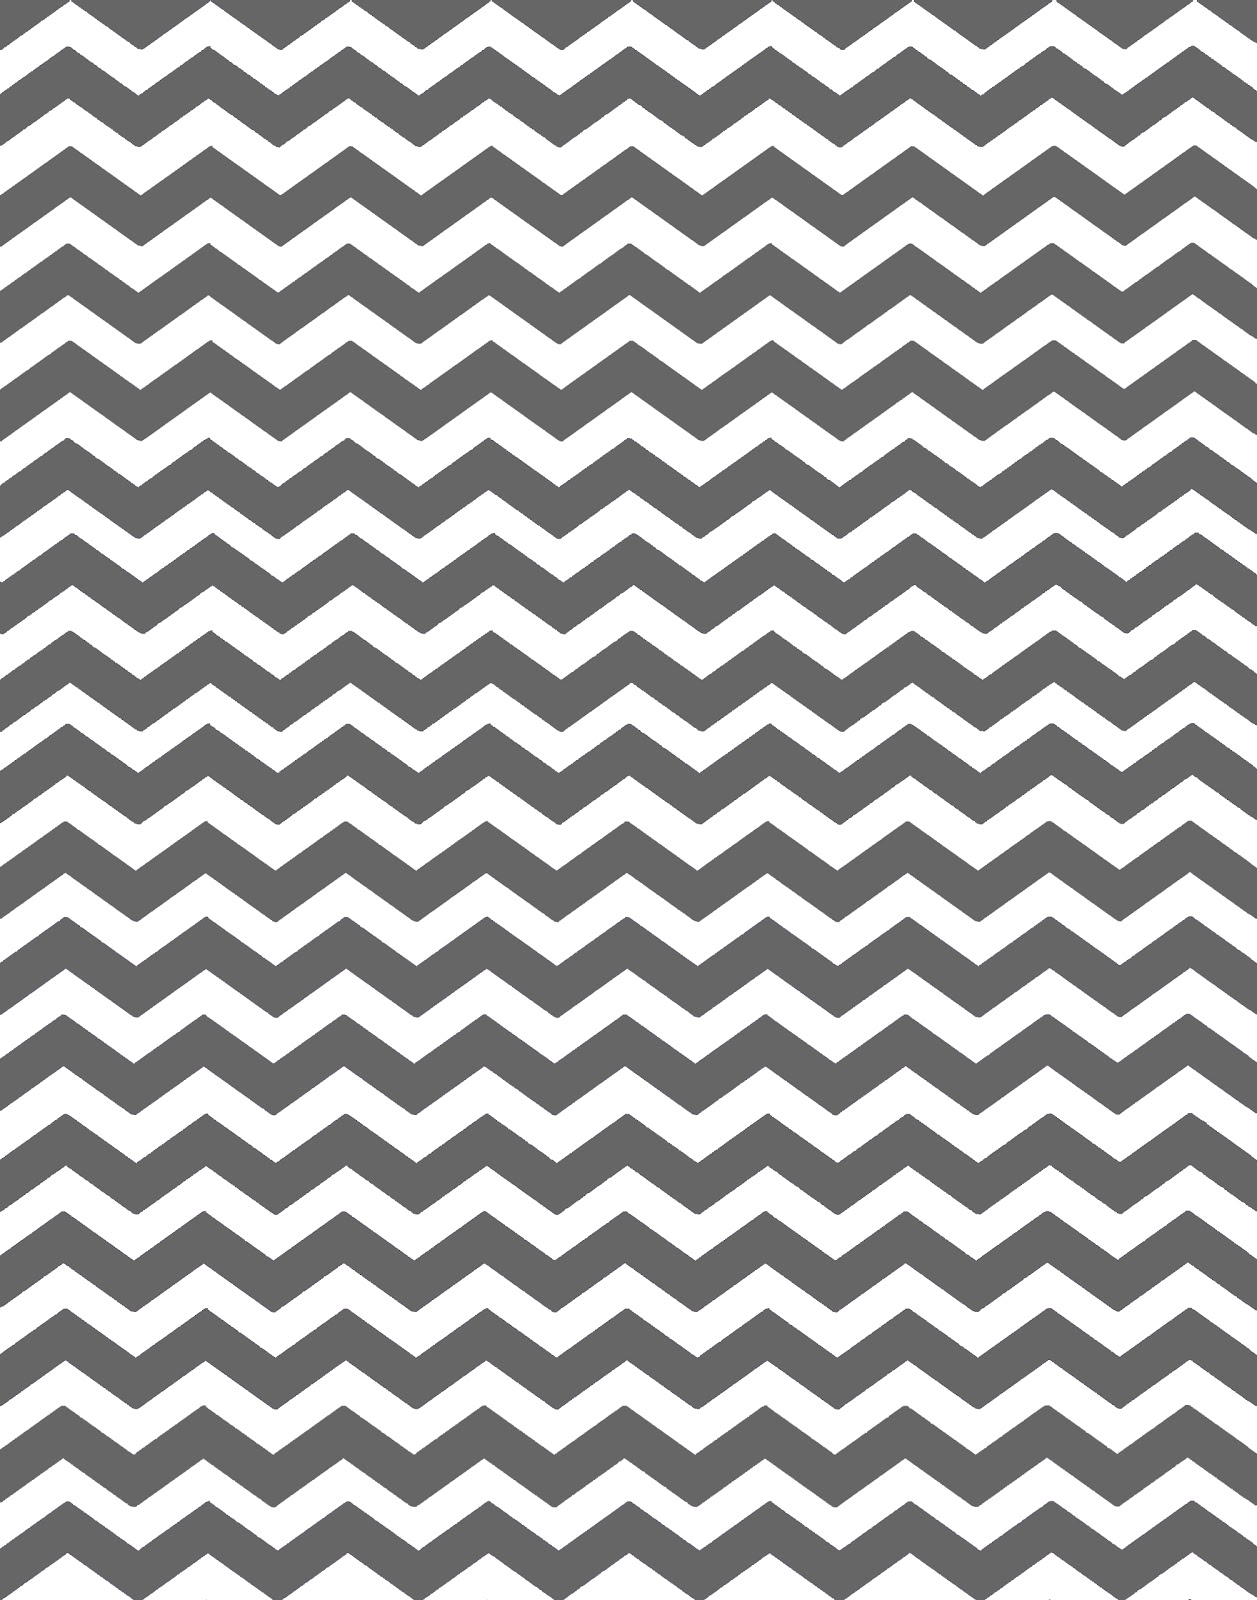 Chevron Pattern Wallpaper http://www.doodlecraft.blogspot.com/2012/07/16-new-colors-chevron-background.html